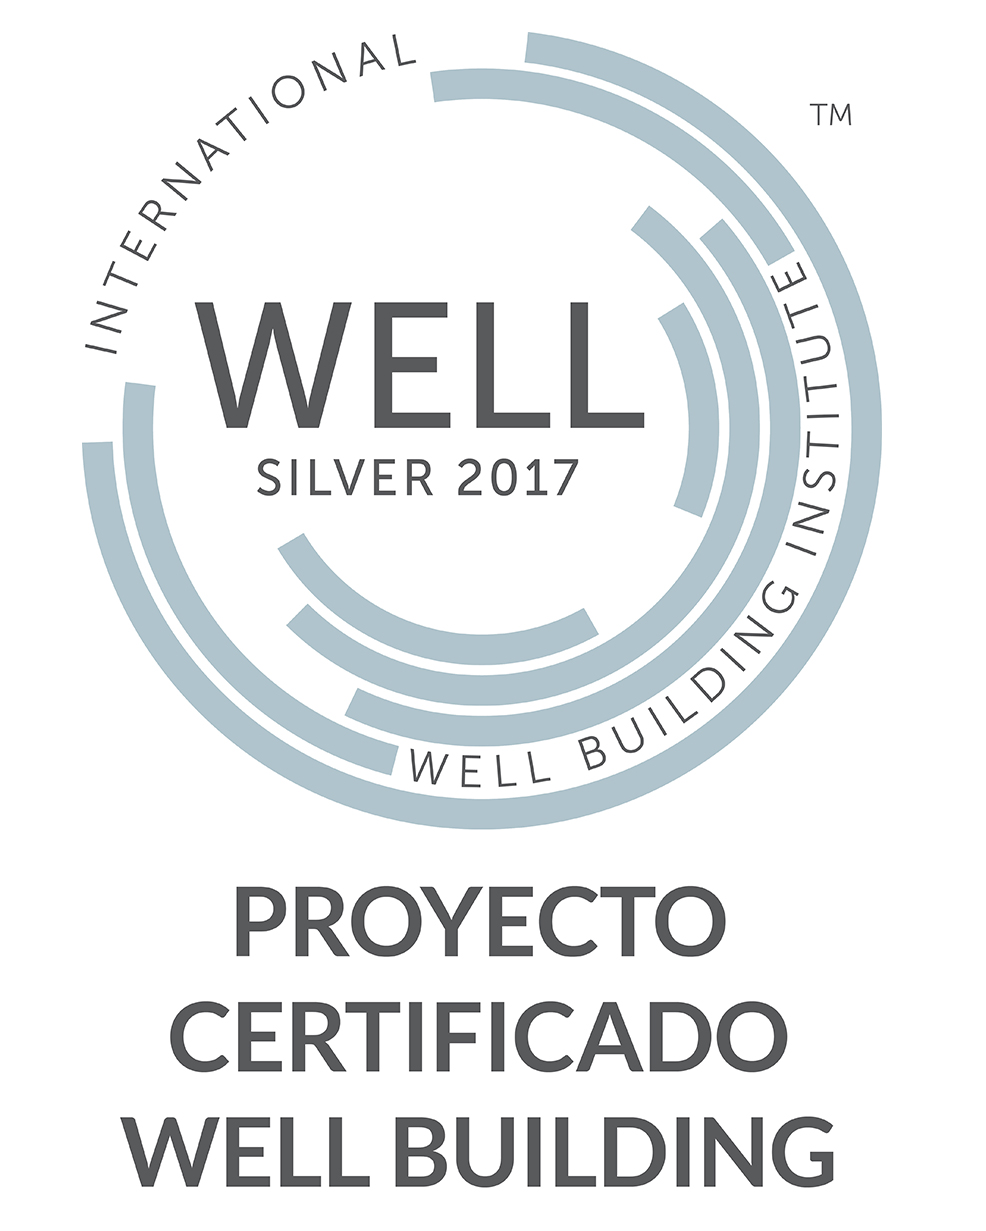 well silver certificado well building proyecto 2017